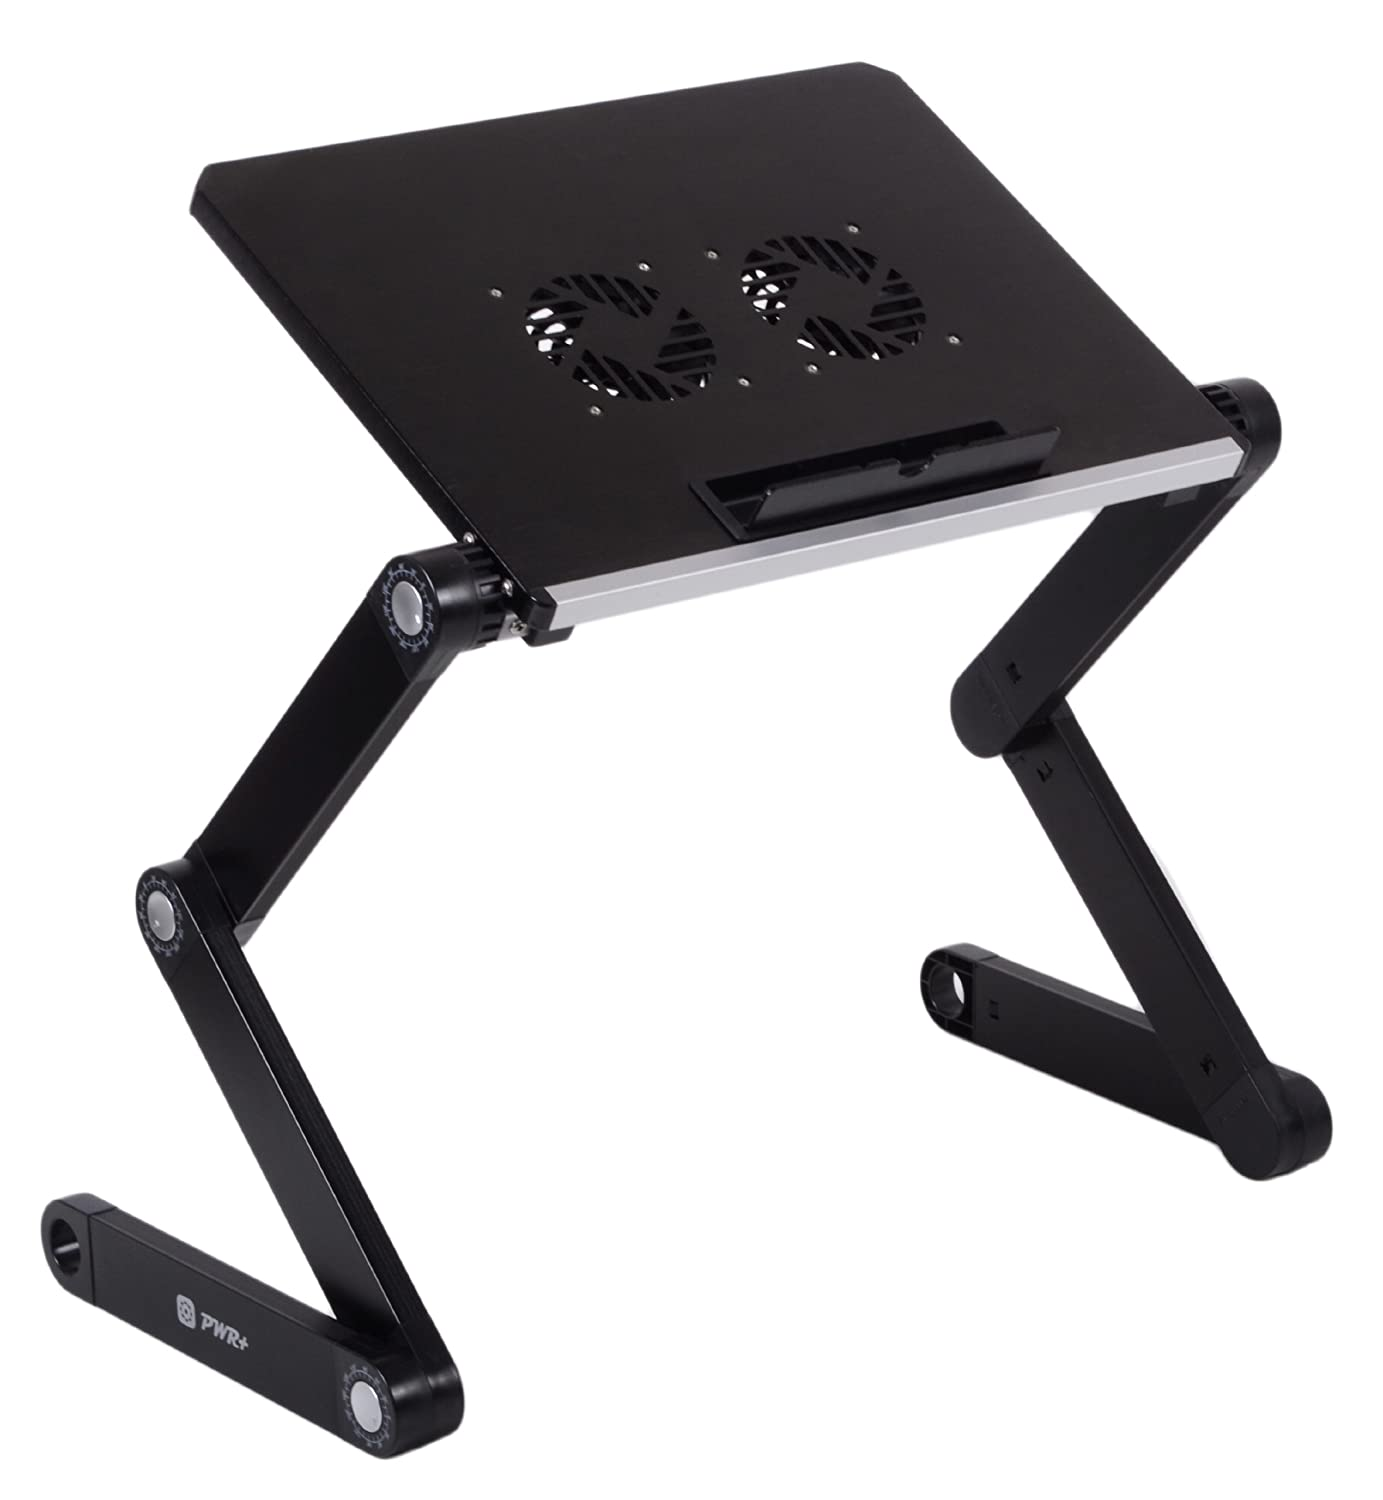 Pwr+ Portable Folding Laptop Notebook Book Table Desk Tray Stand with Cooling Pad - 2x Cooler Fans - Aluminium Alloy - Adjustable at Sears.com